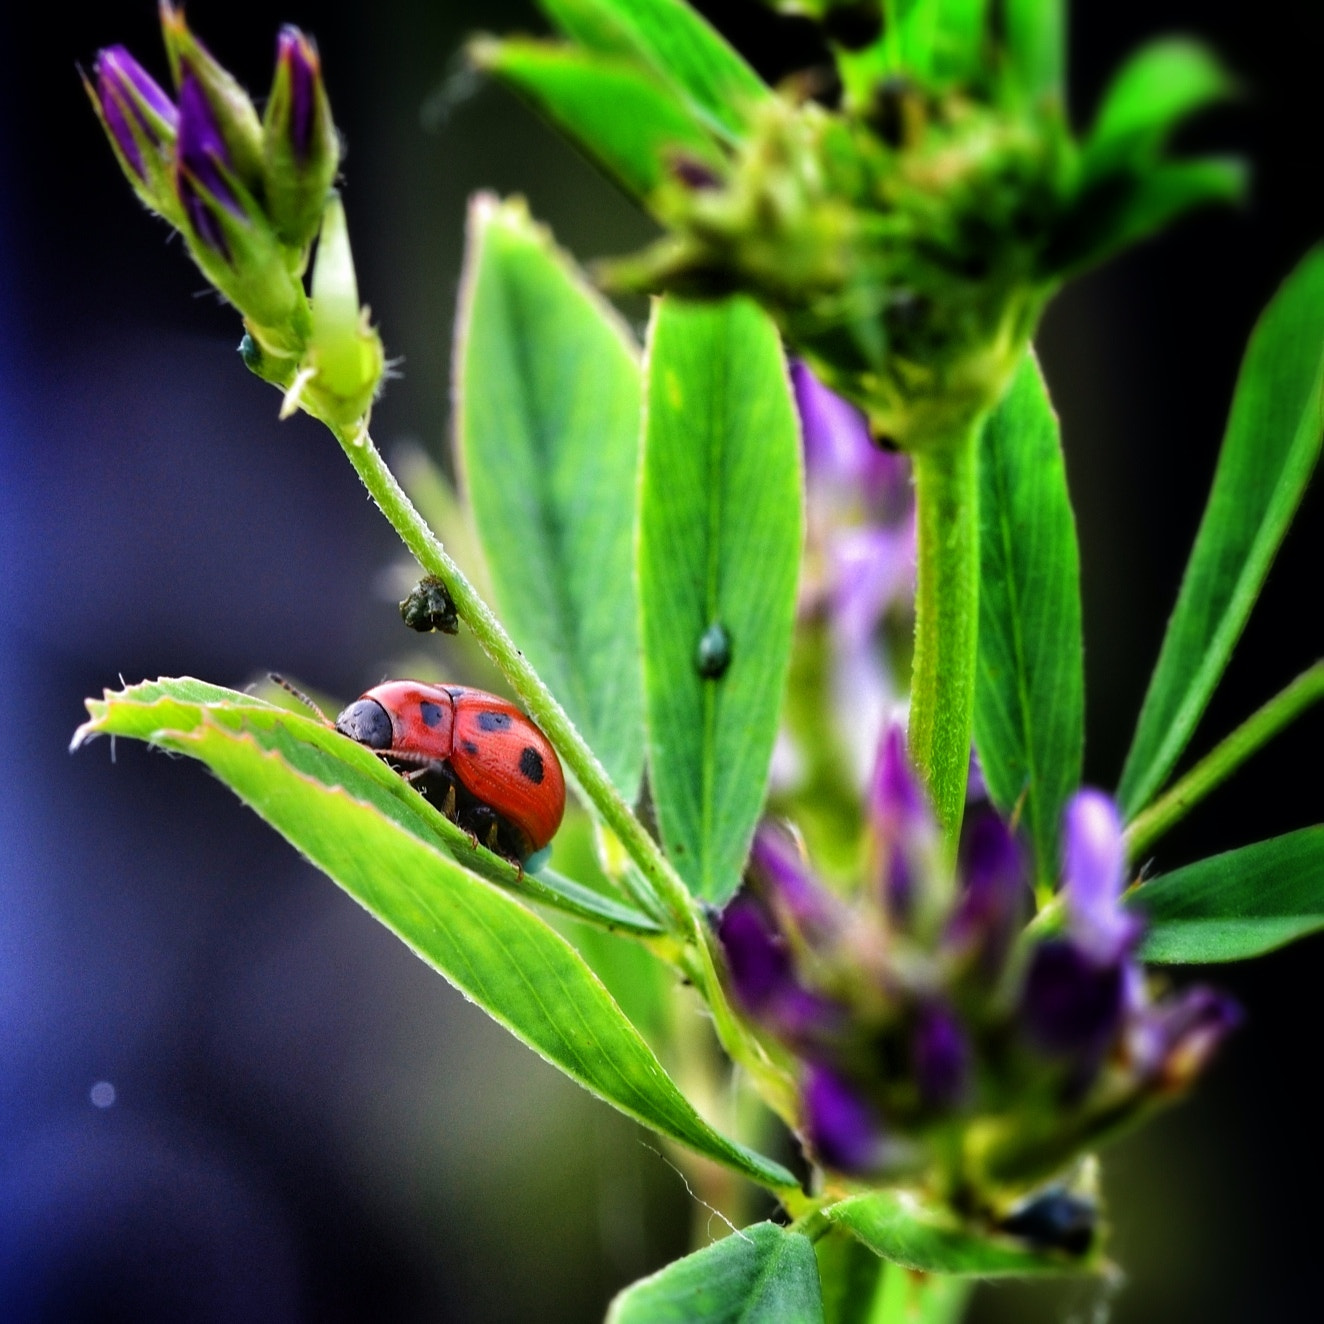 Photograph Colorful Ladybug by Silvia Peschiera on 500px